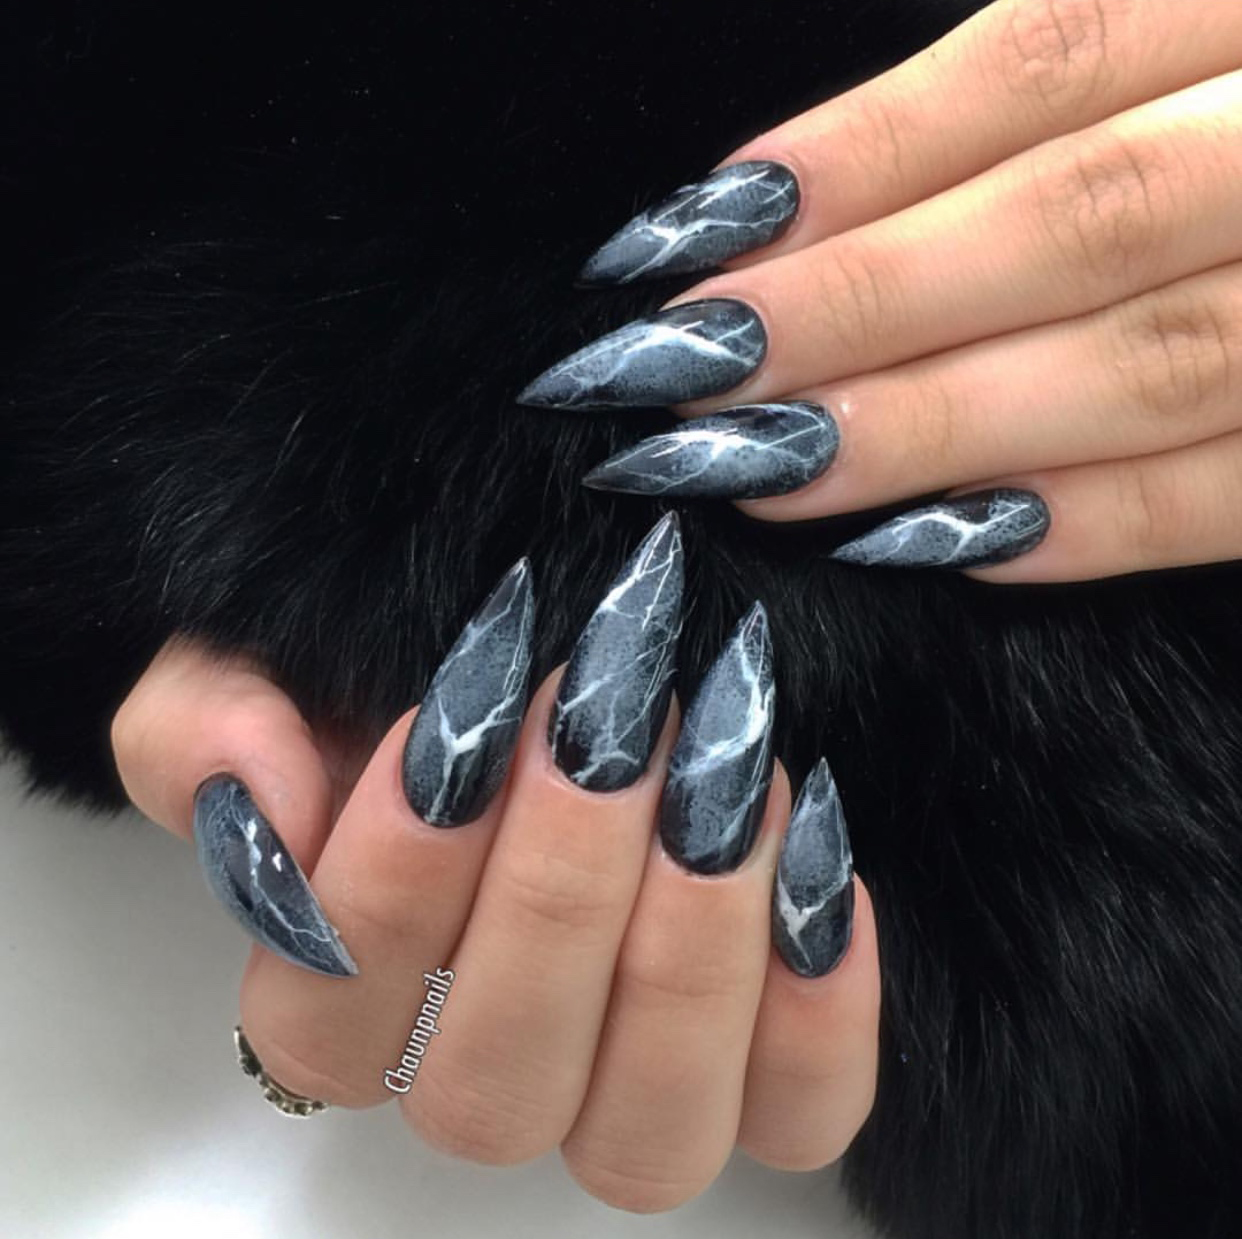 Weekly Favorite Chaunpnails Rocks Our World With A Marquina Manicure That S Fit For New Desktop Background